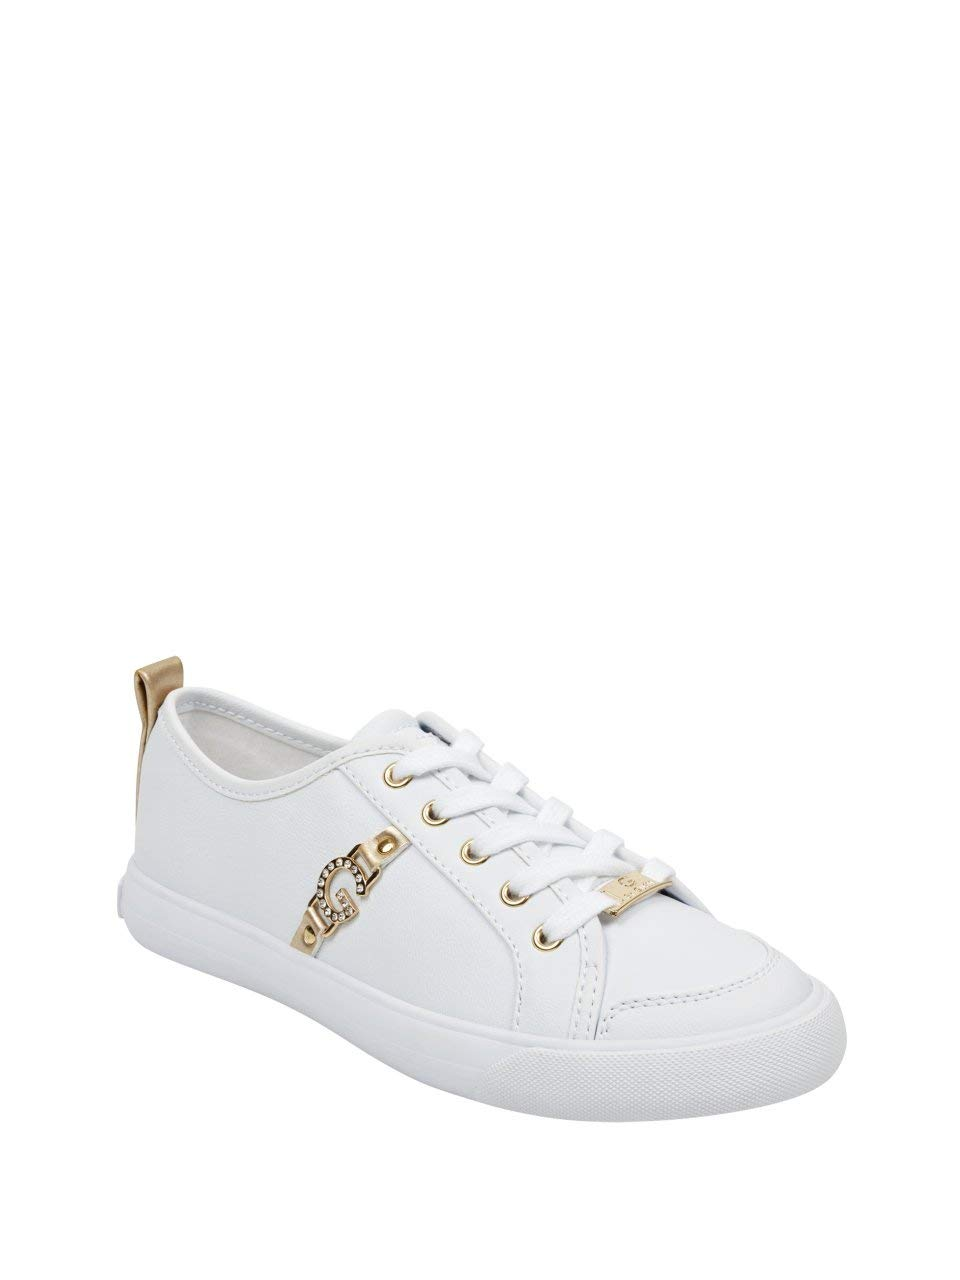 GUESS Womens Banx Low Top Sneakers